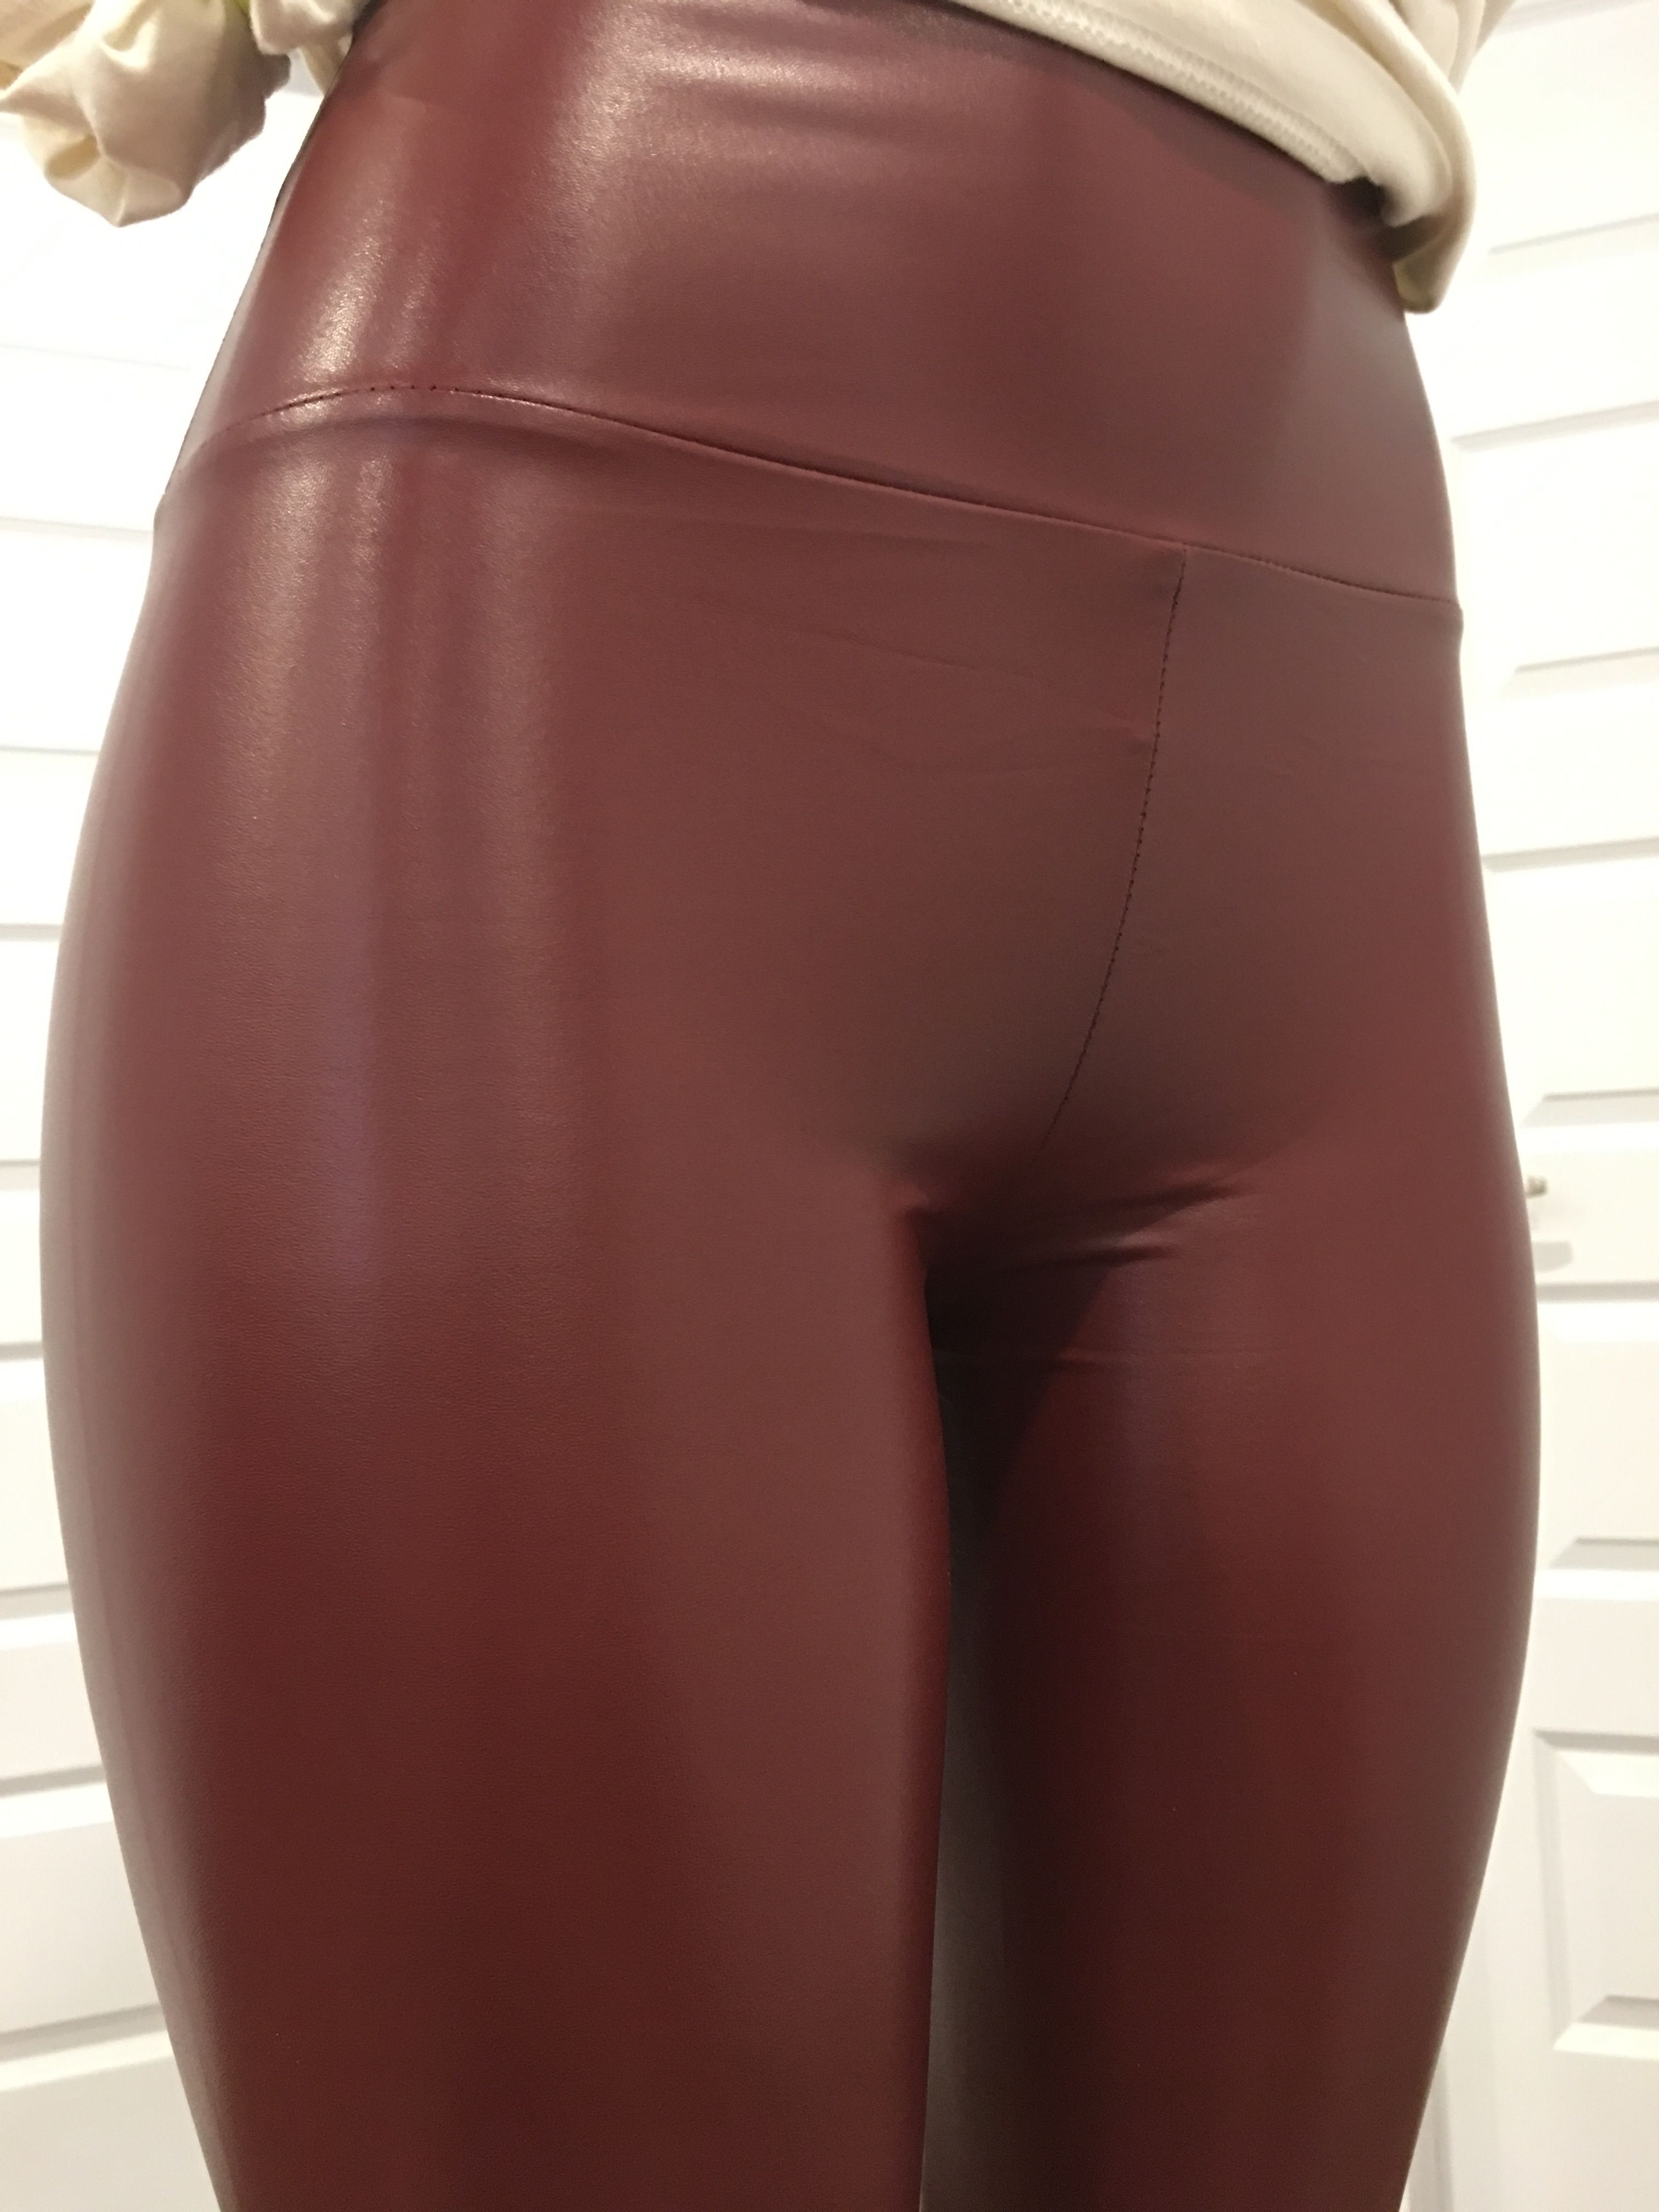 Pin On Leather Leggings Outfit